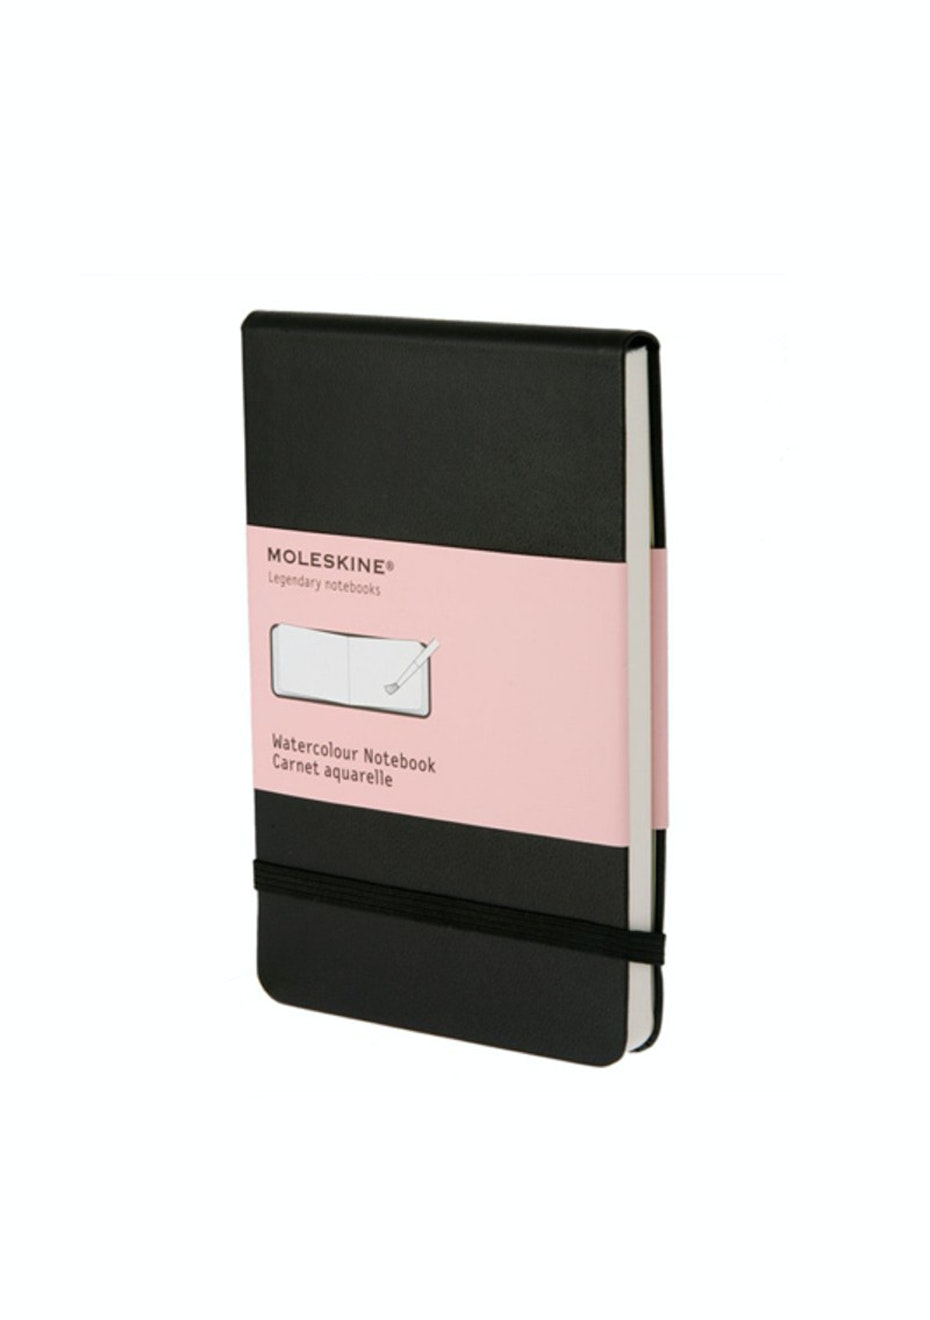 Moleskine - Watercolour Hard Cover Notebook - Plain - Pocket - Black